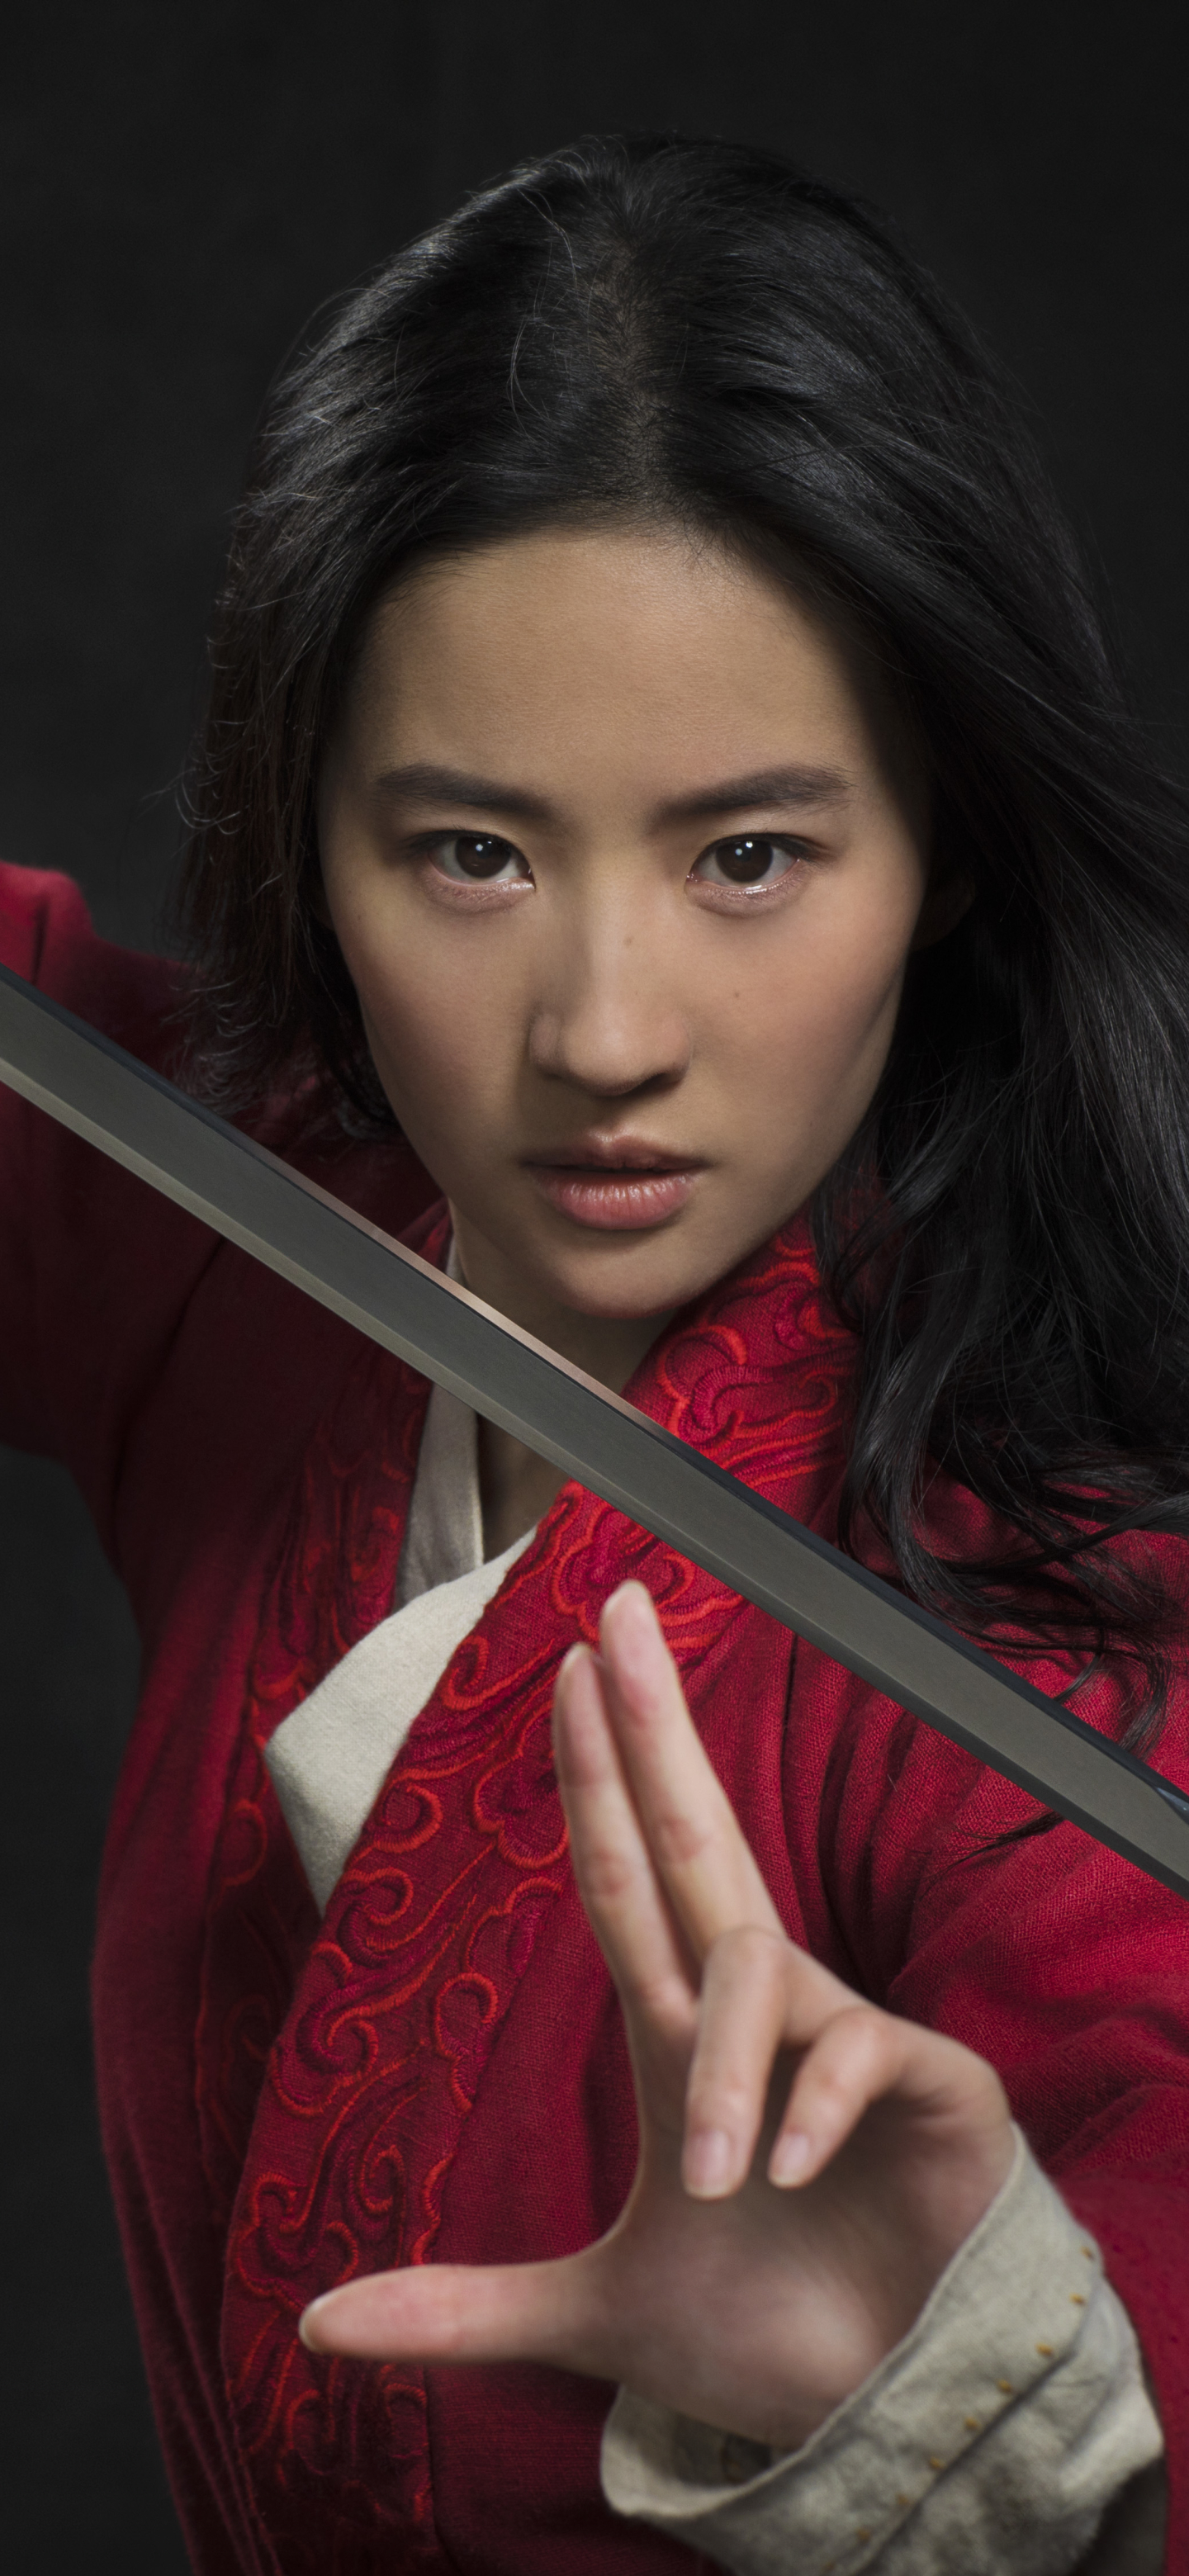 MovieMulan 2020 1440x3120 Wallpaper ID 802003   Mobile Abyss 1125x2436